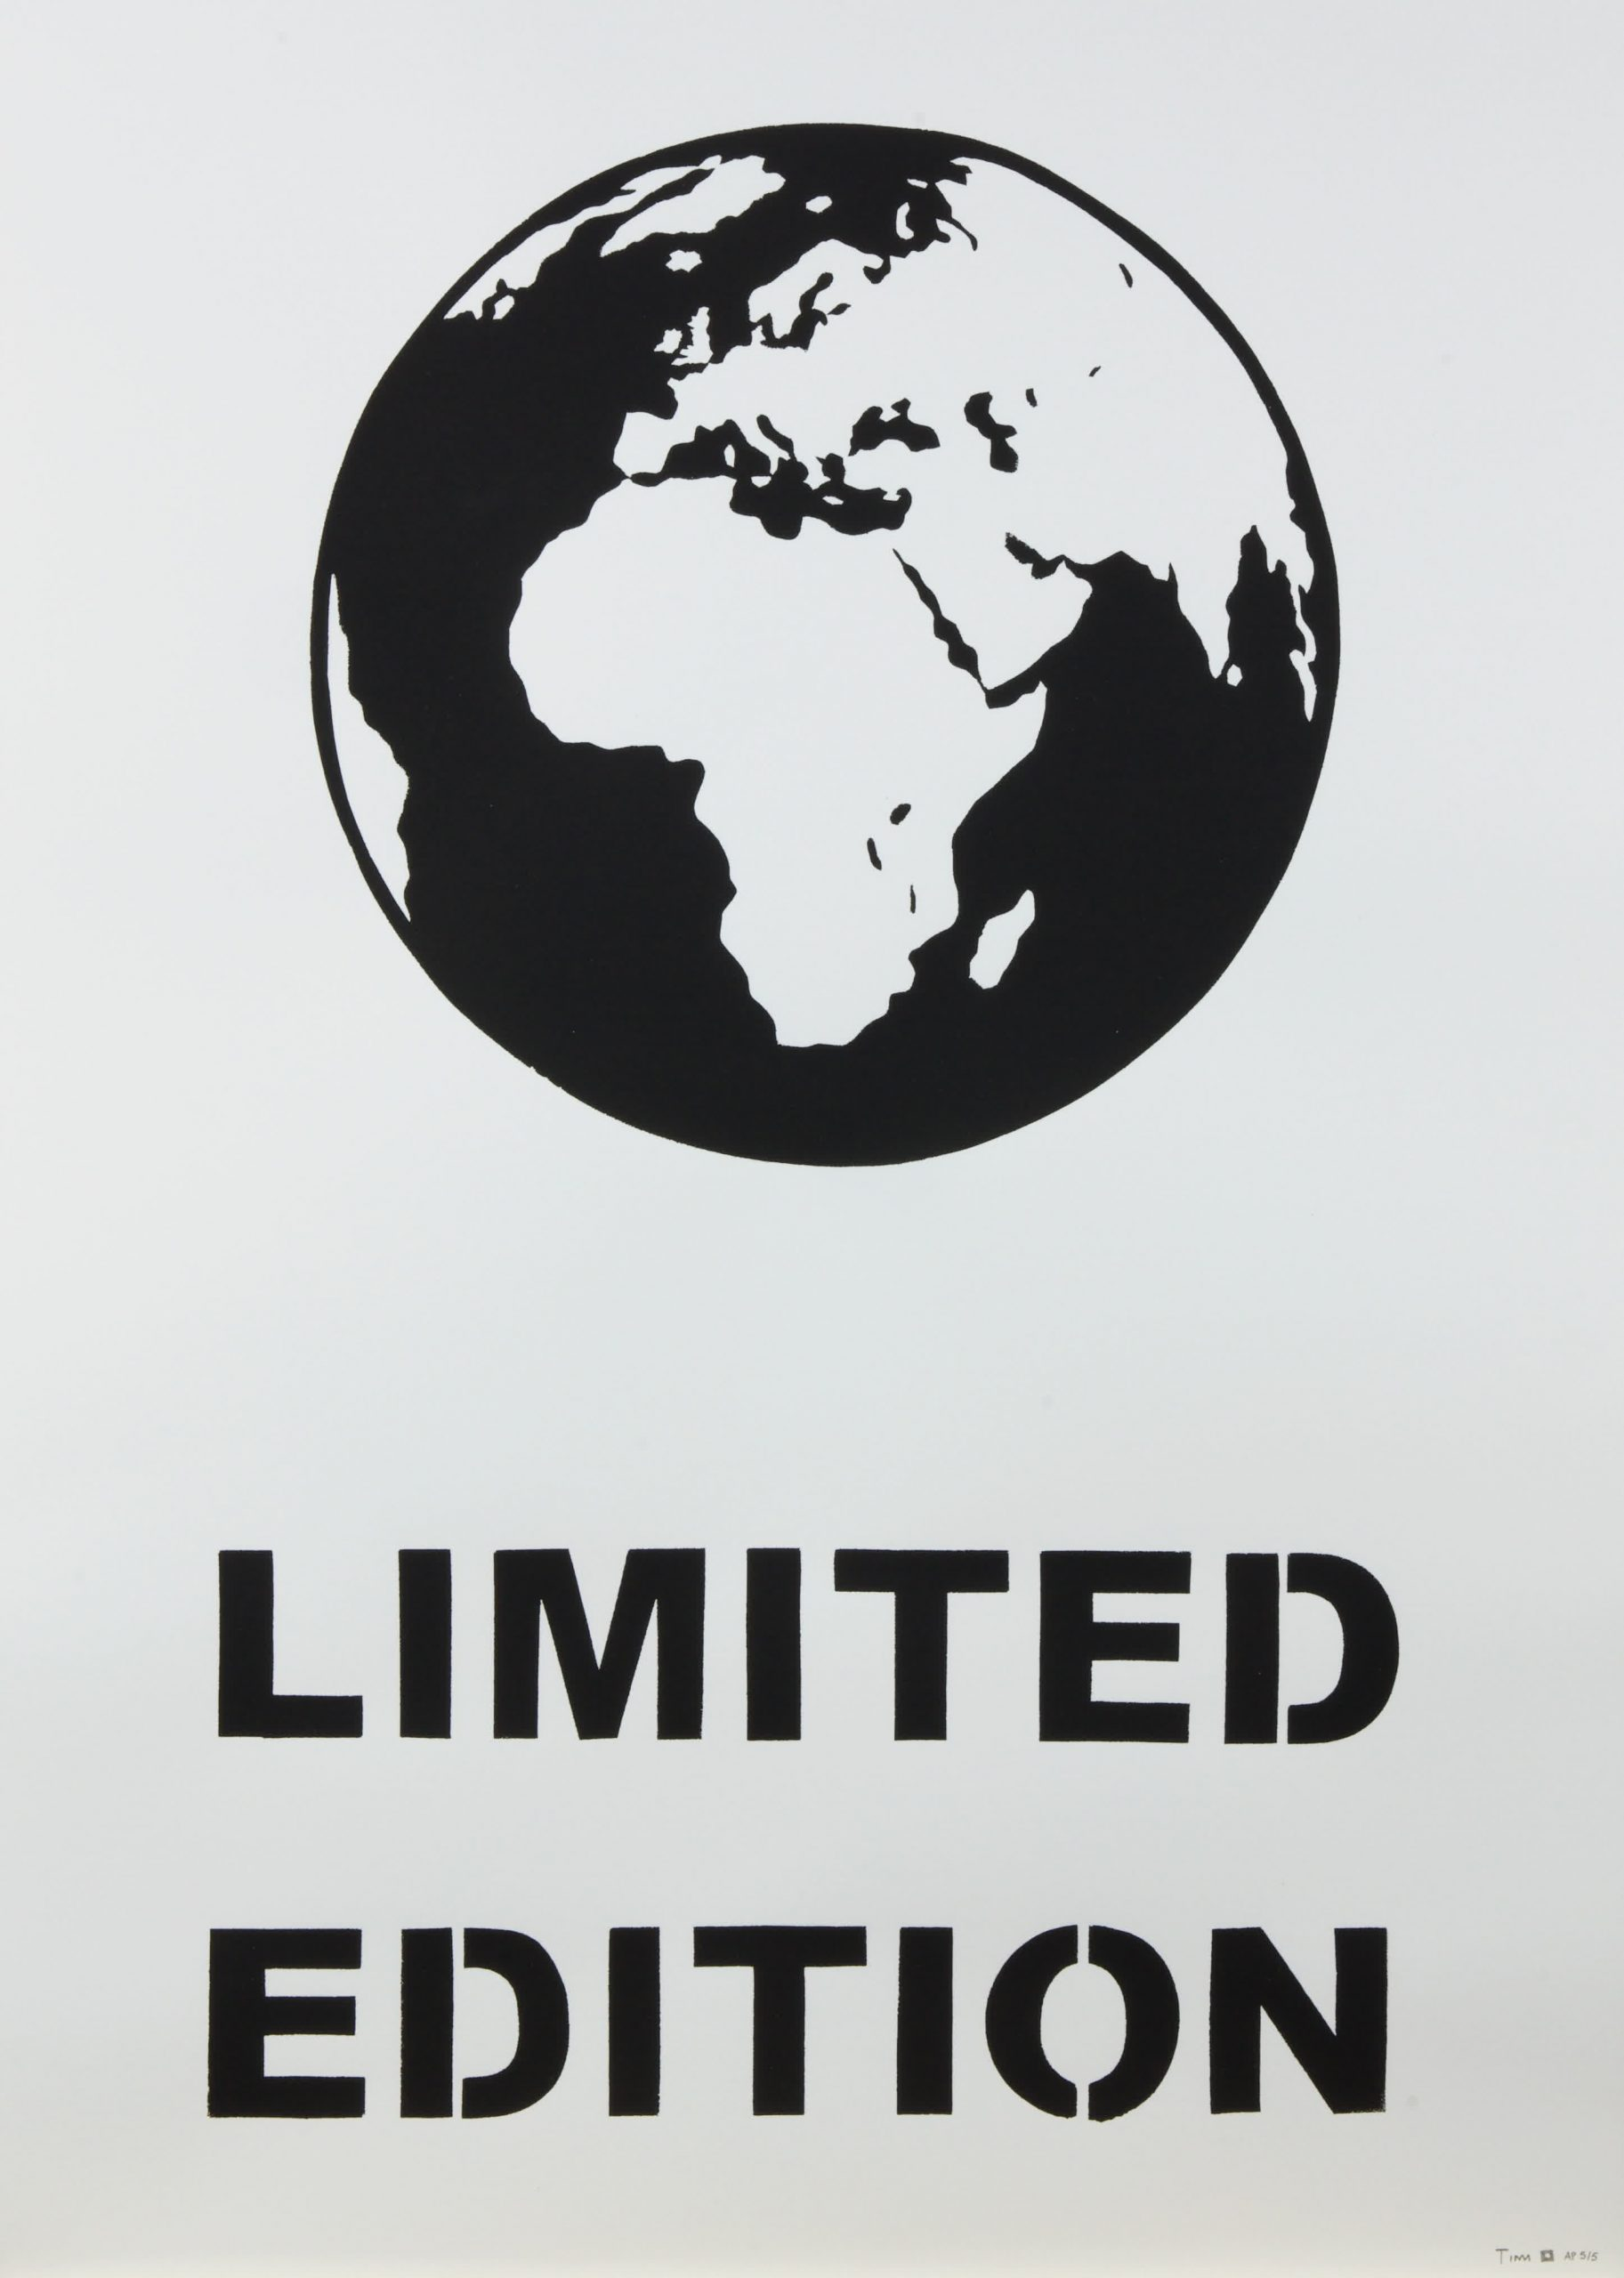 Timo : Limited Edition